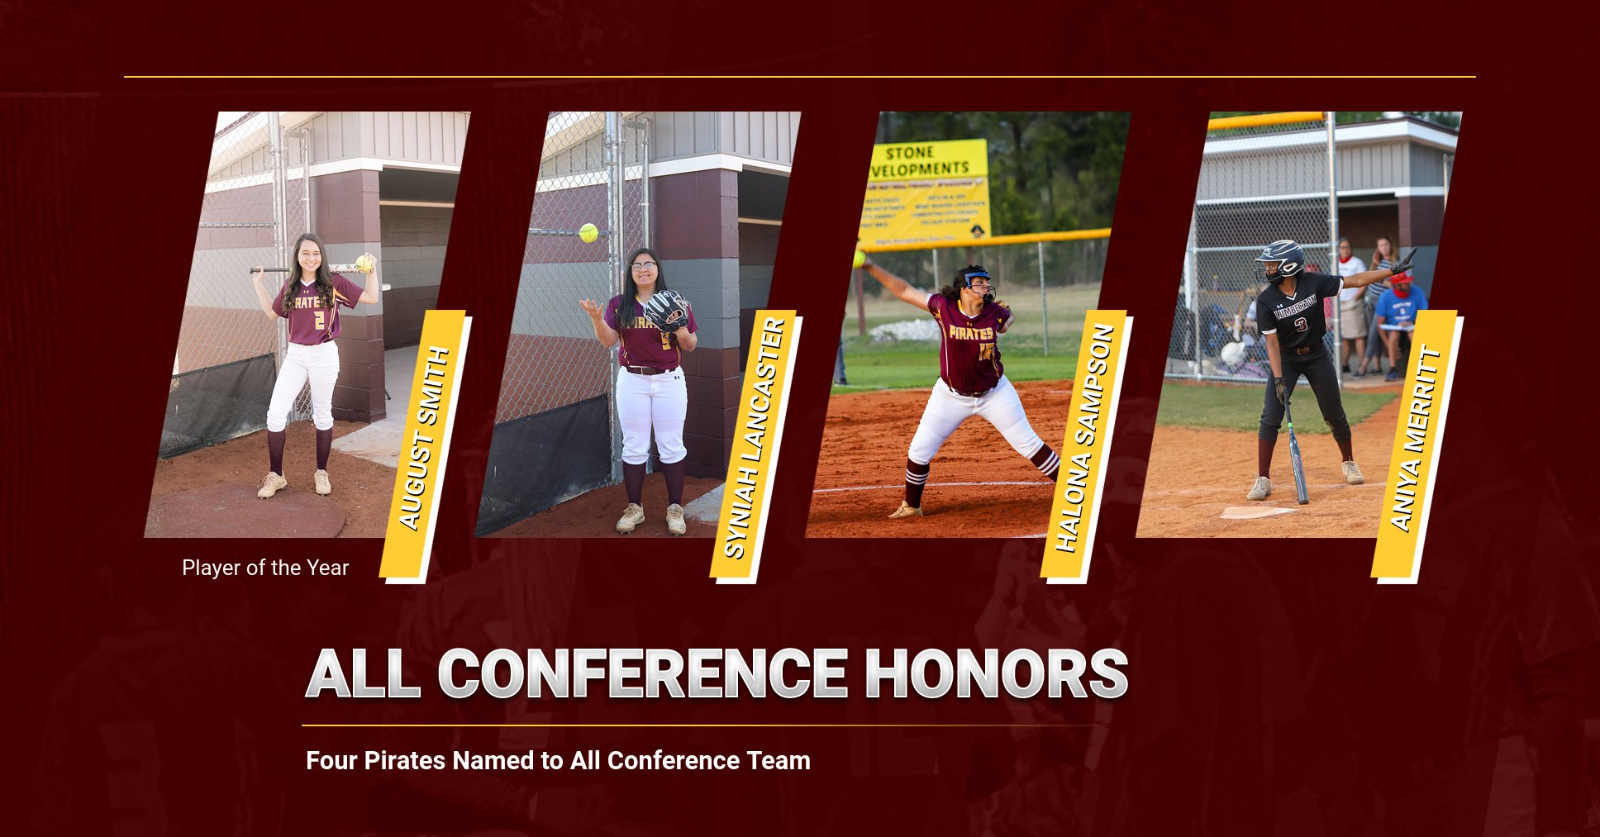 Four Pirates Named to All Conference Softball Team